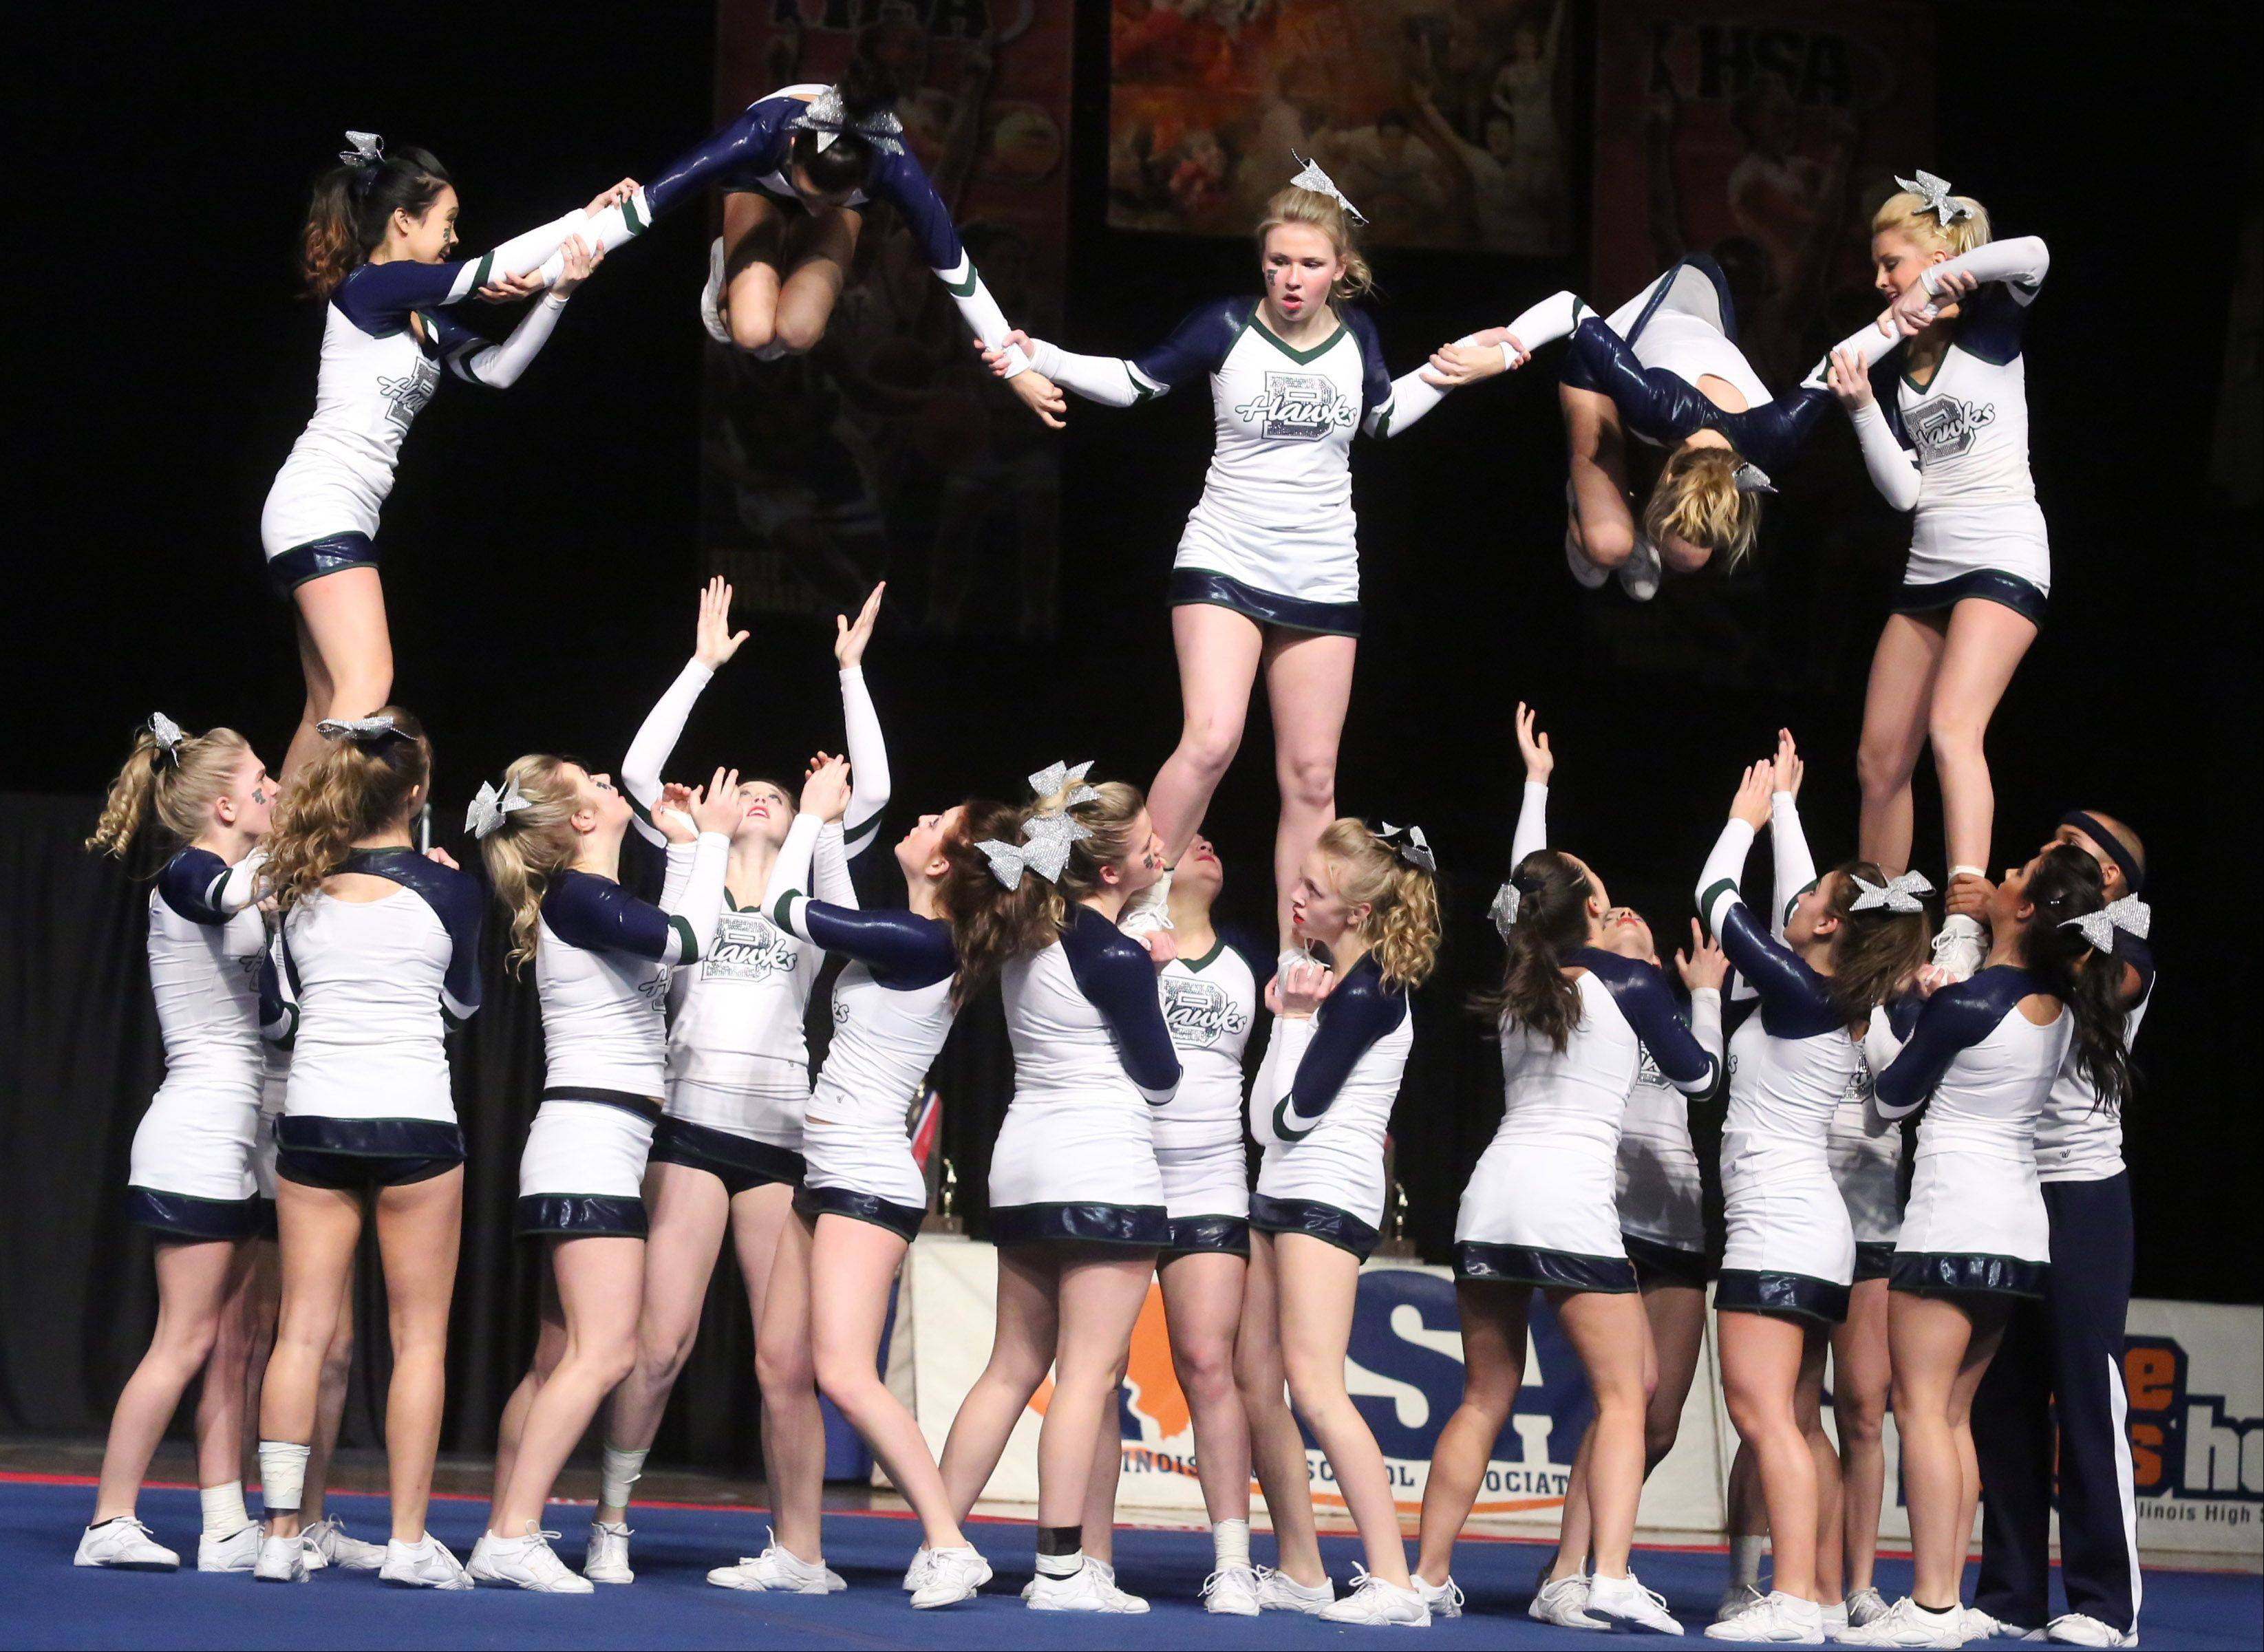 Bartlett High School performs in the large team category in preliminary rounds of IHSA cheerleading state tournament on Friday in Bloomington.